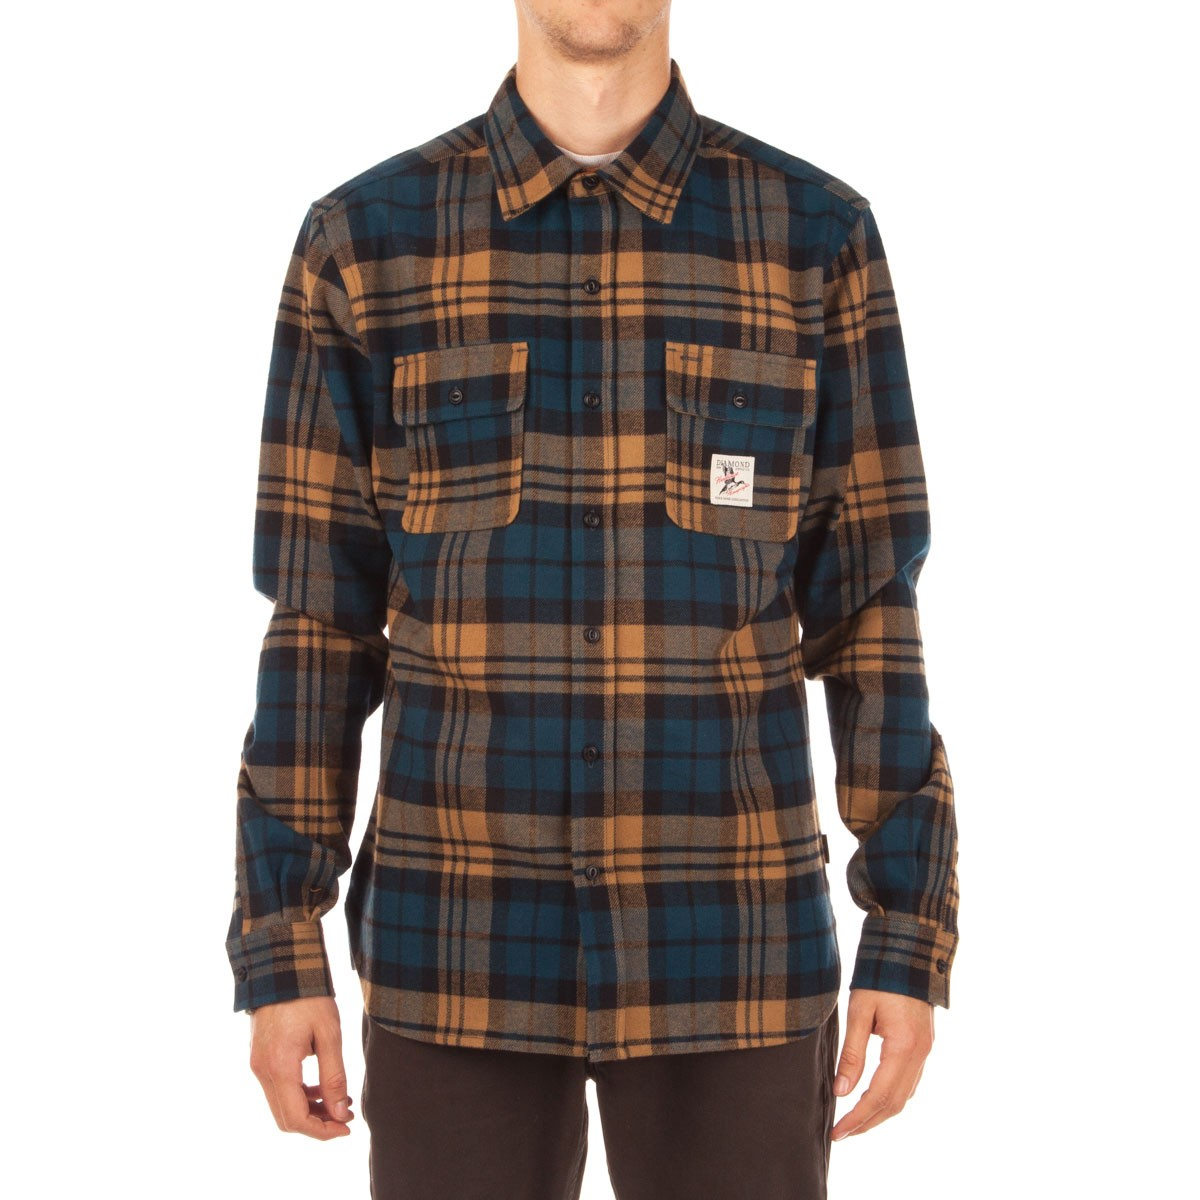 Diamond supply co caribou flannel plaid shirt golden brown for Brown and black plaid shirt